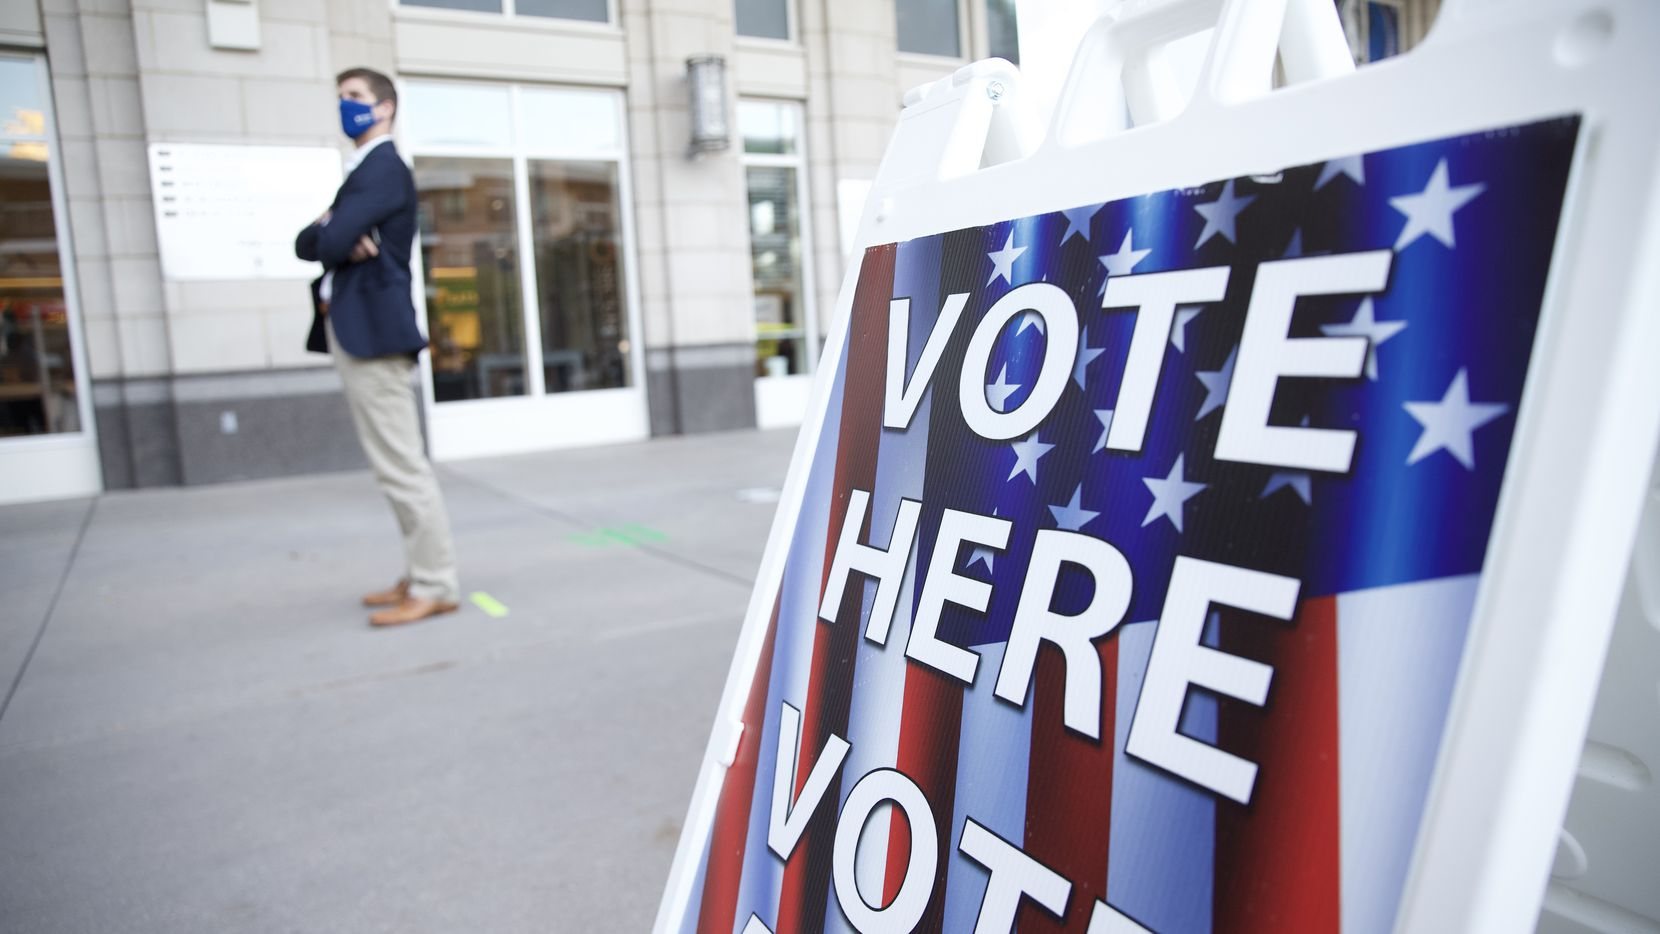 A voter waits in line at the American Airlines Center in Dallas before polls open the morning of Election Day, Tuesday, Nov. 3, 2020. (Juan Figueroa/The Dallas Morning News)